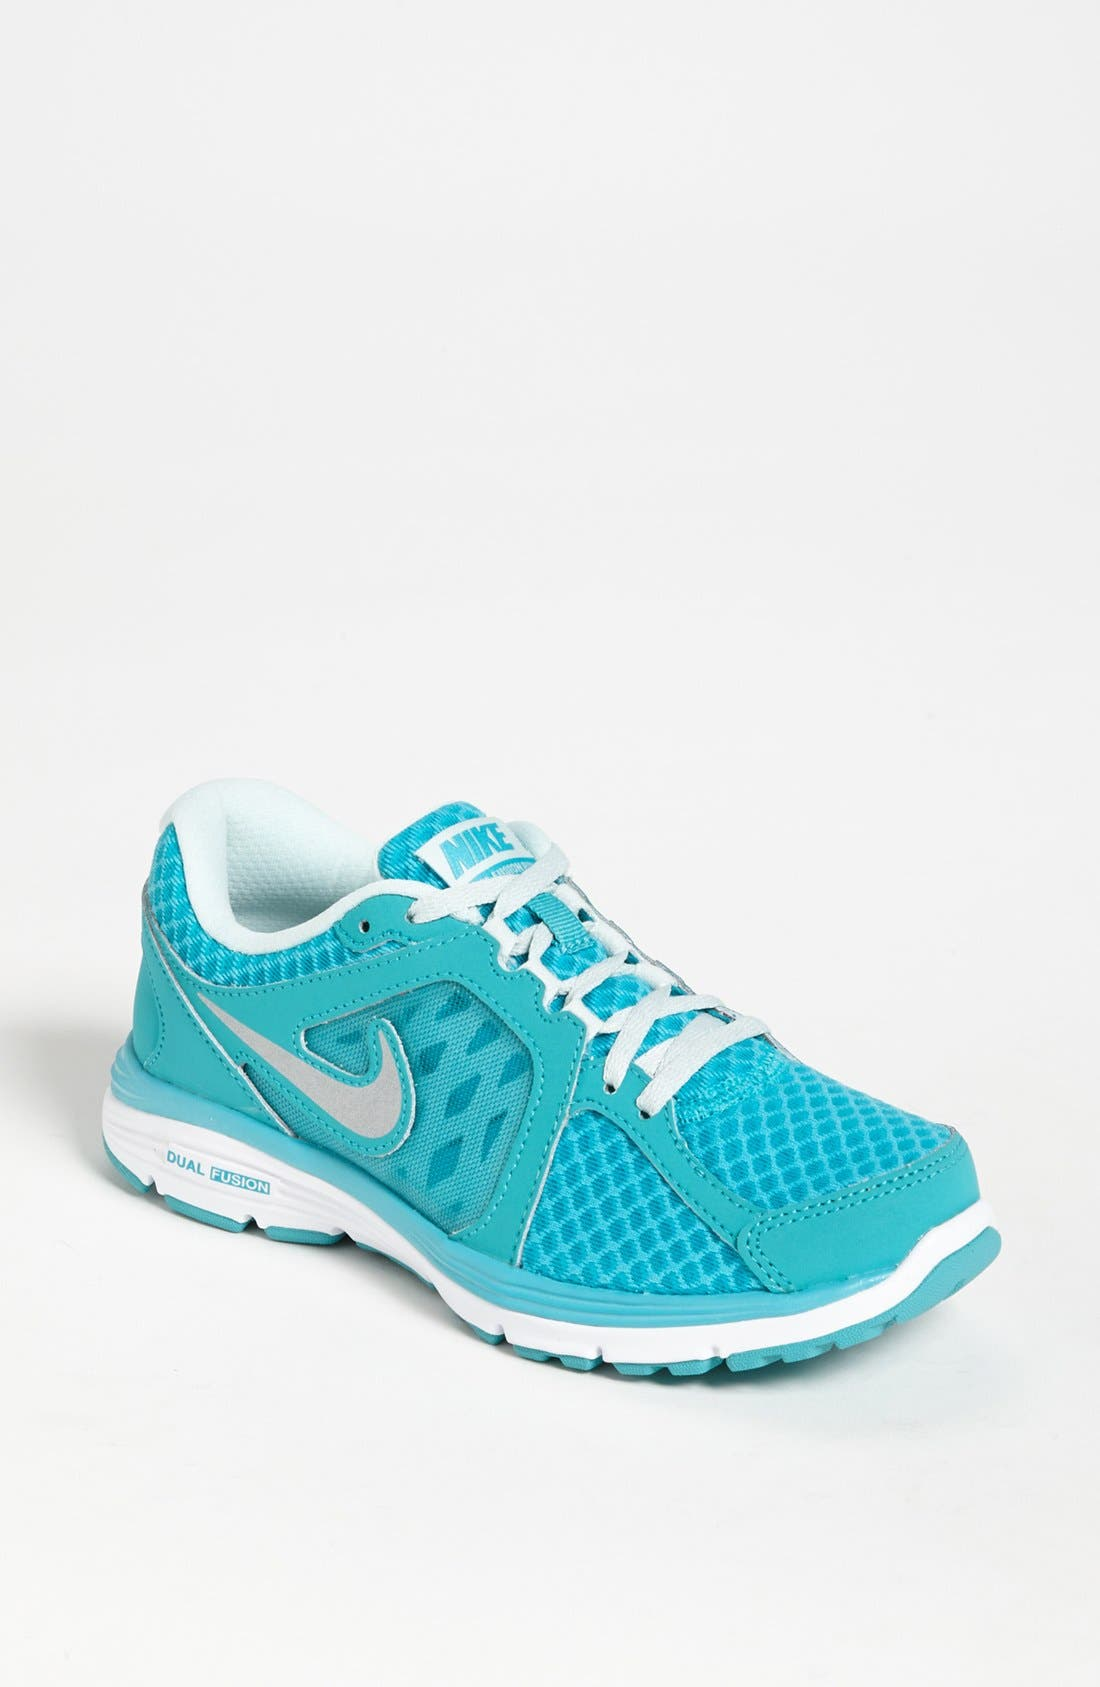 Alternate Image 1 Selected - Nike 'Dual Fusion Run Breathe' Running Shoe (Women)